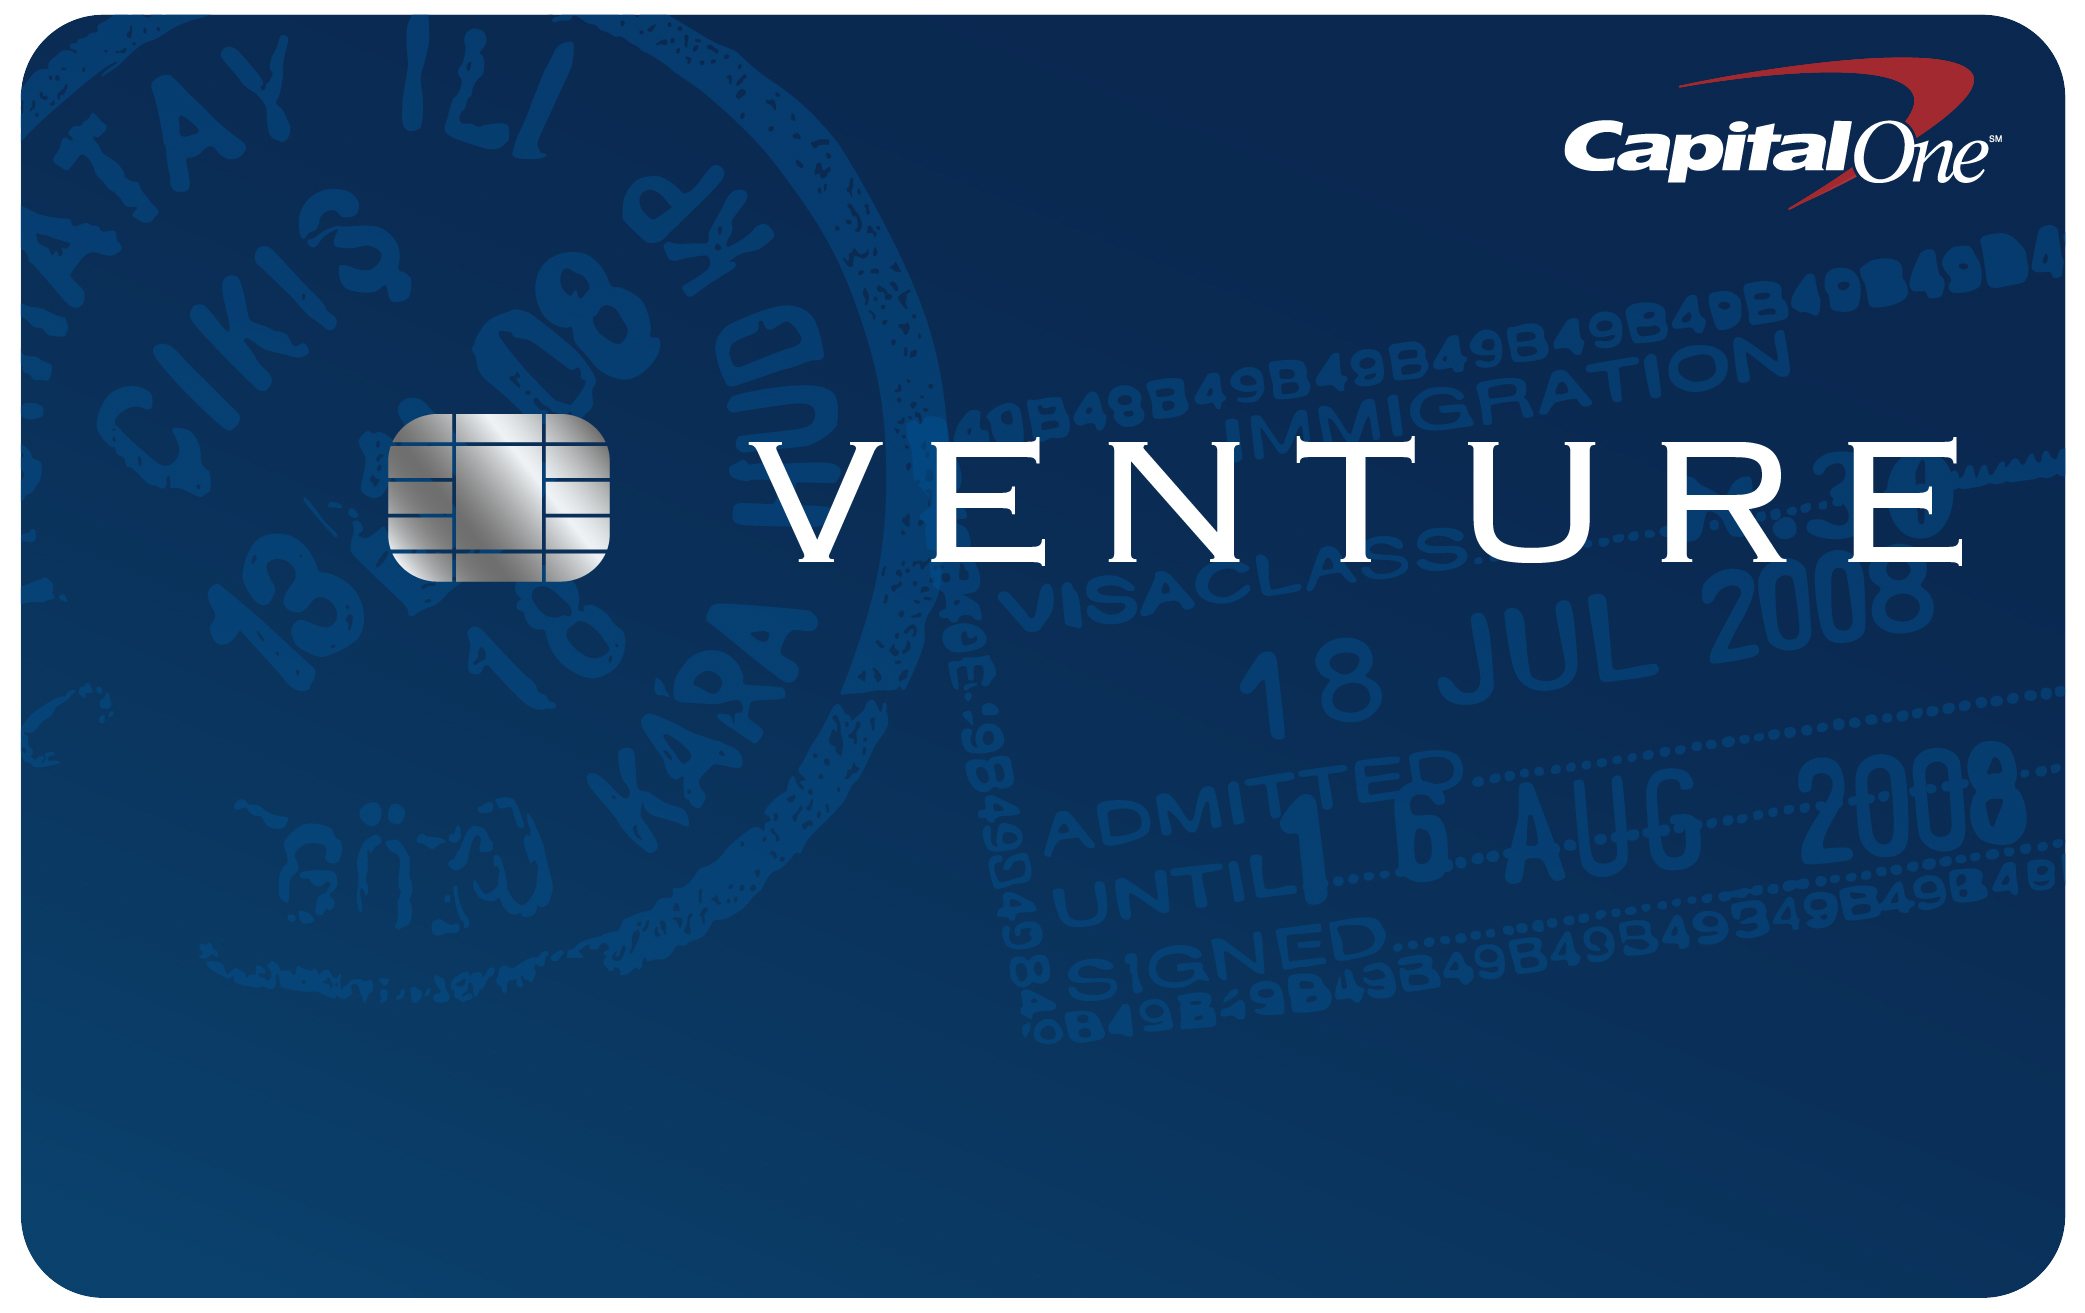 Capital One Credit Card Rewards Program